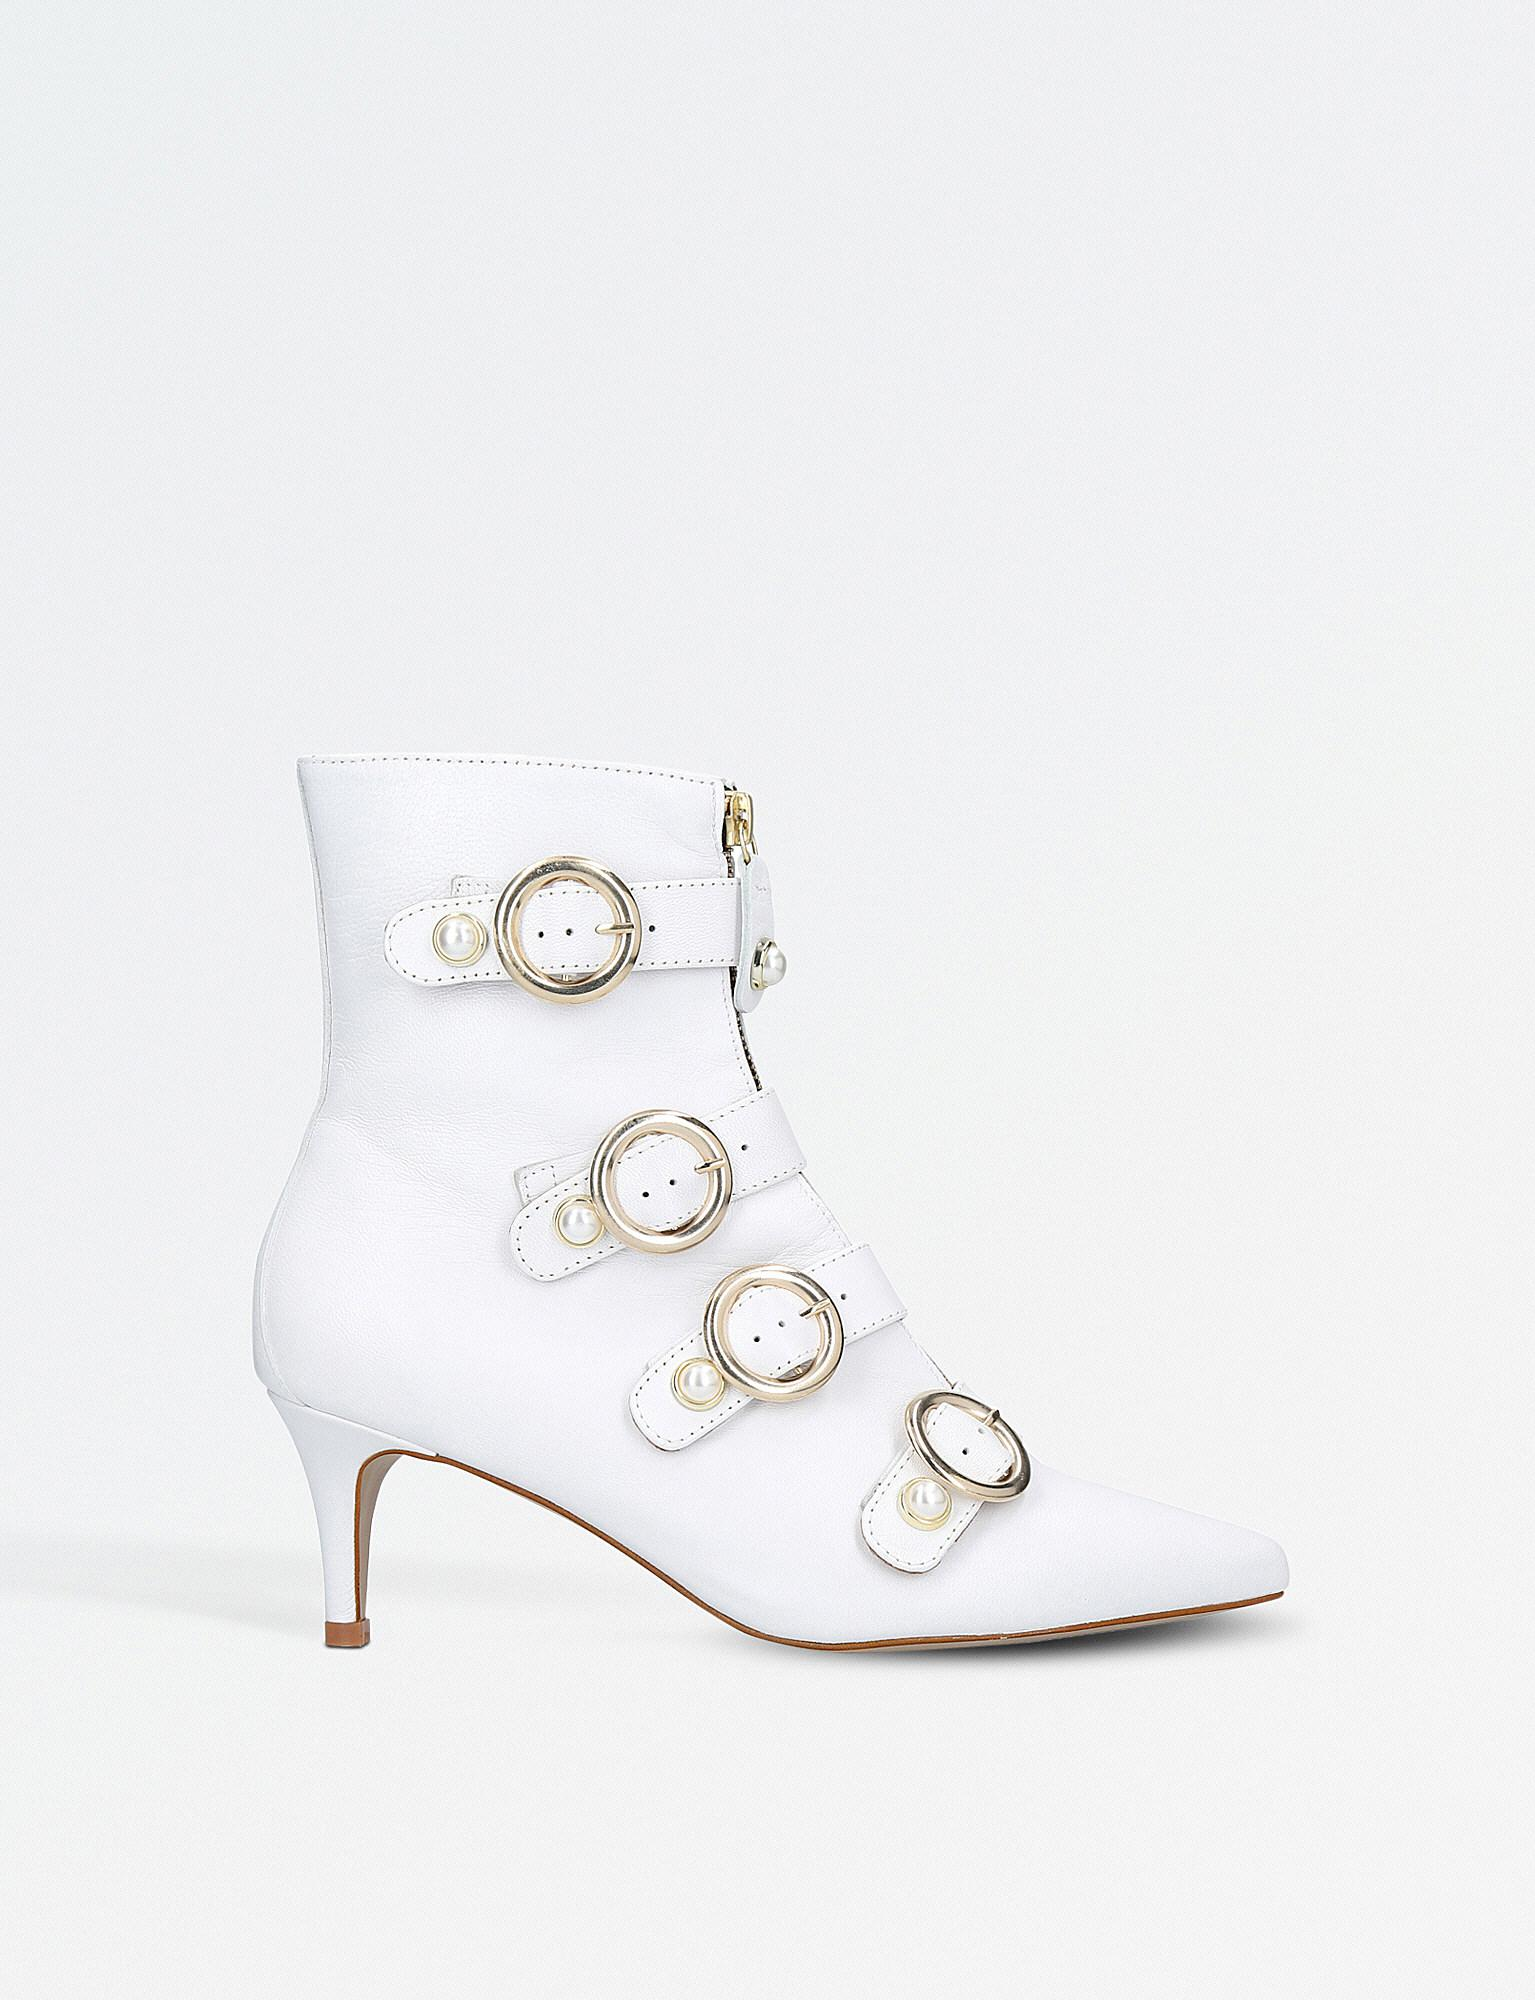 4d697f7ea6b Carvela Kurt Geiger Sparky Leather Ankle Boots in White - Lyst